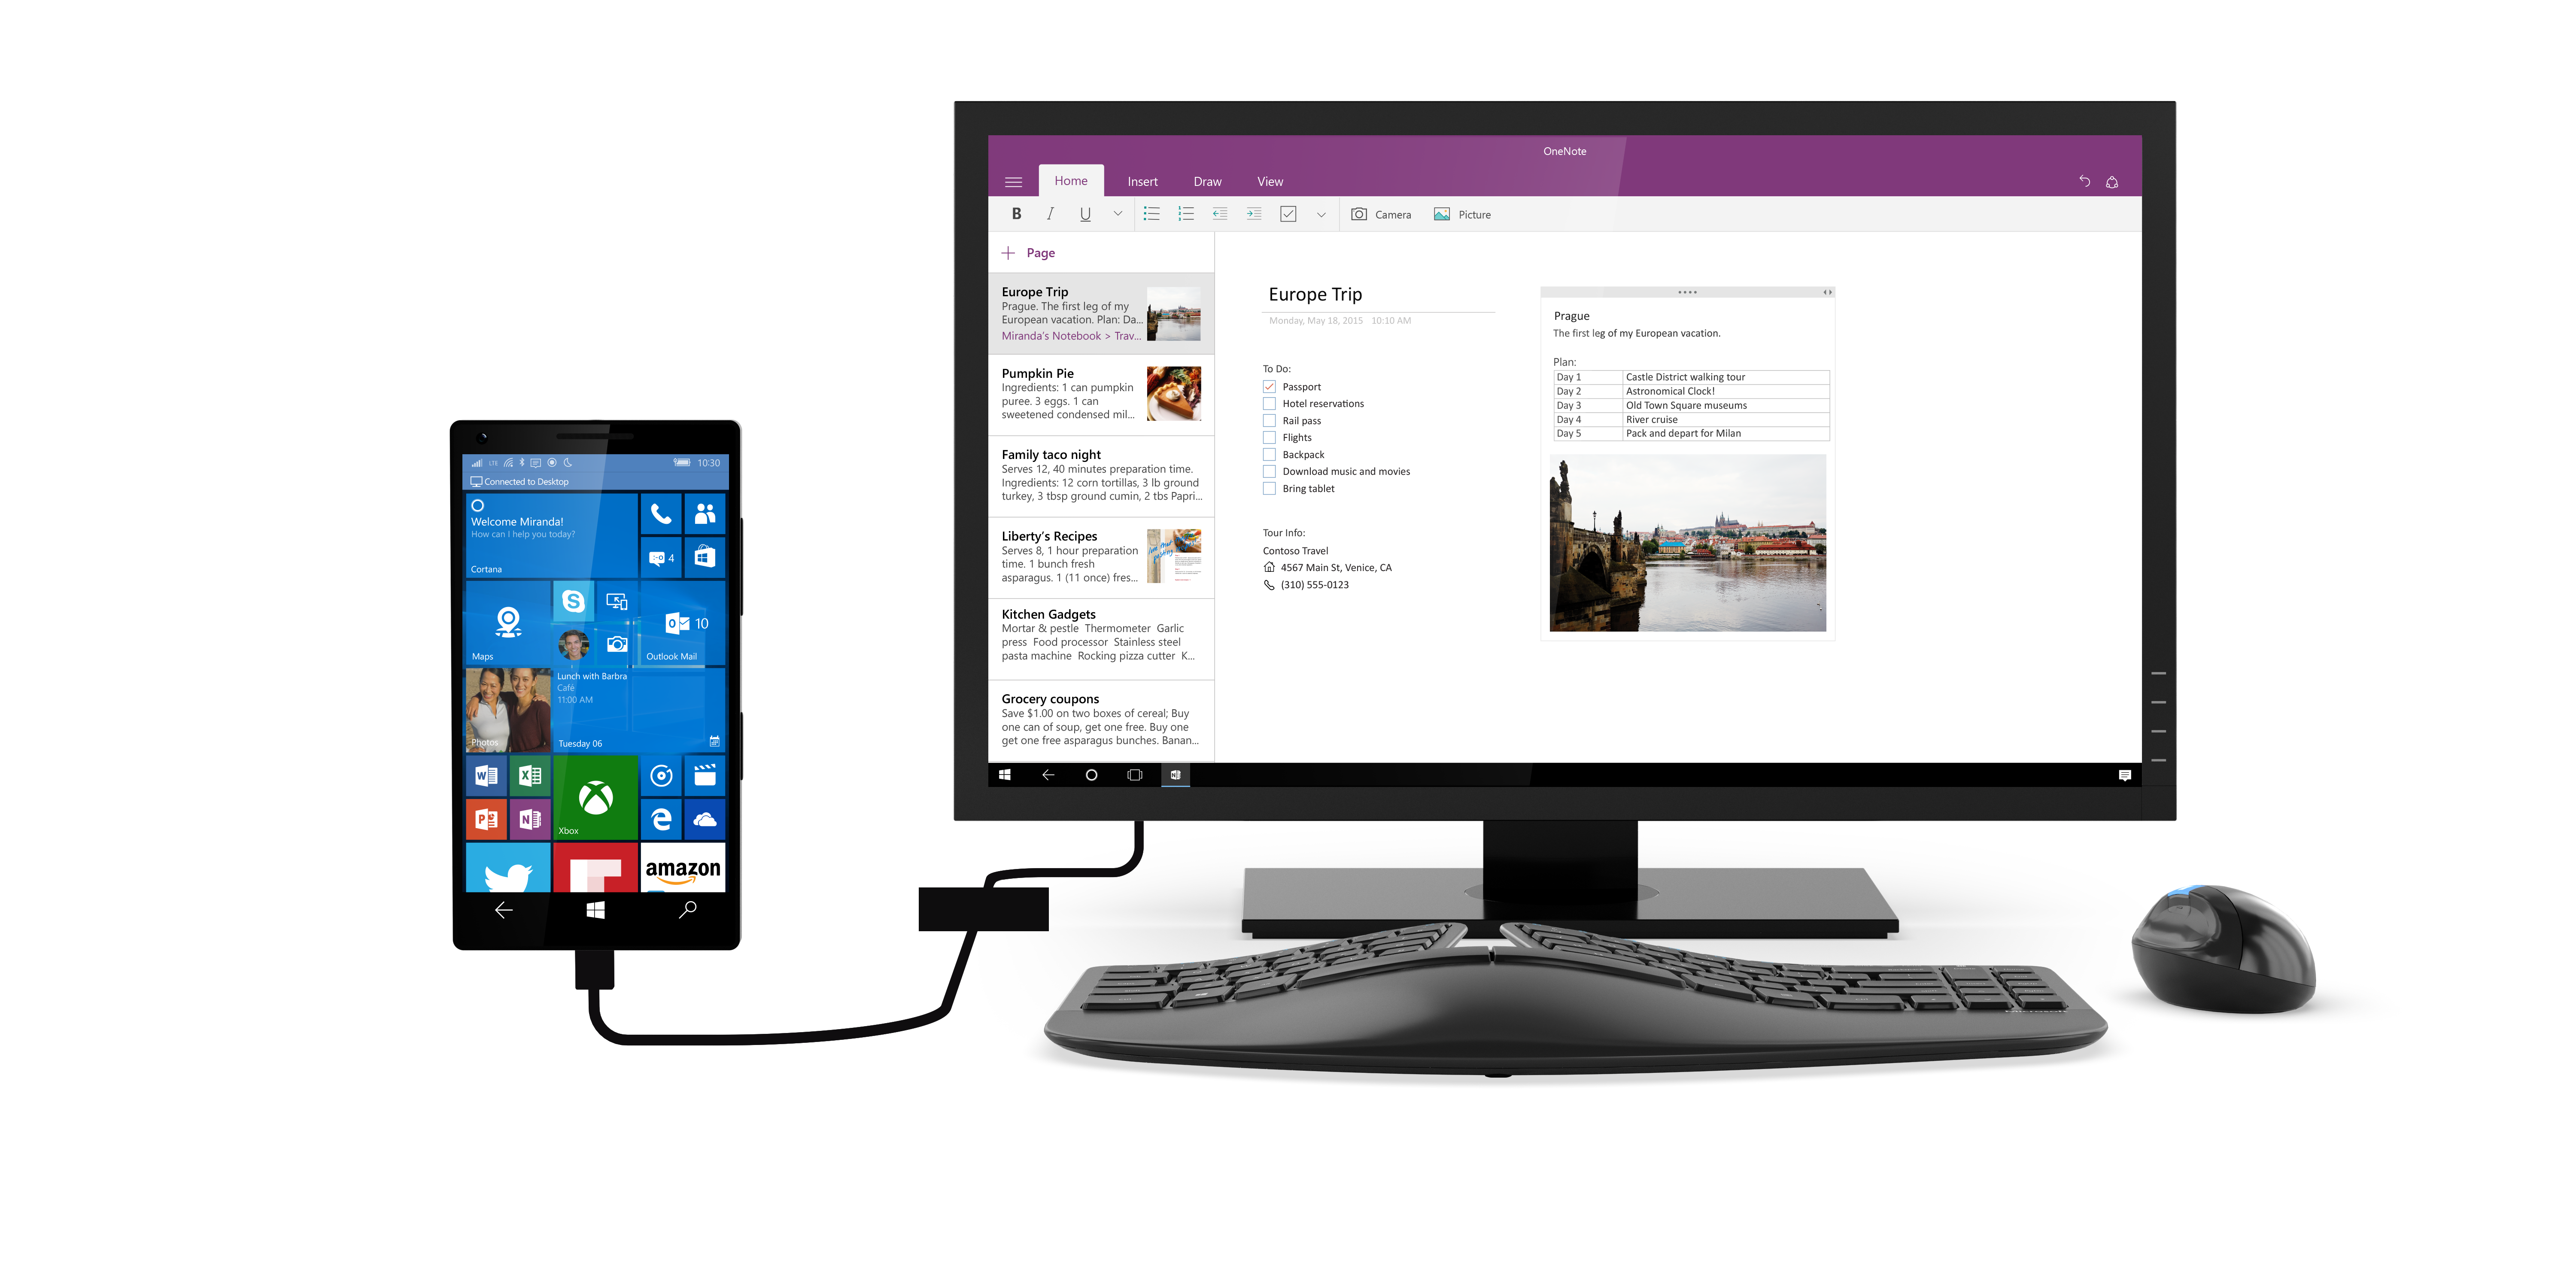 W10_Continuum_Productivity_OneNote_en-US